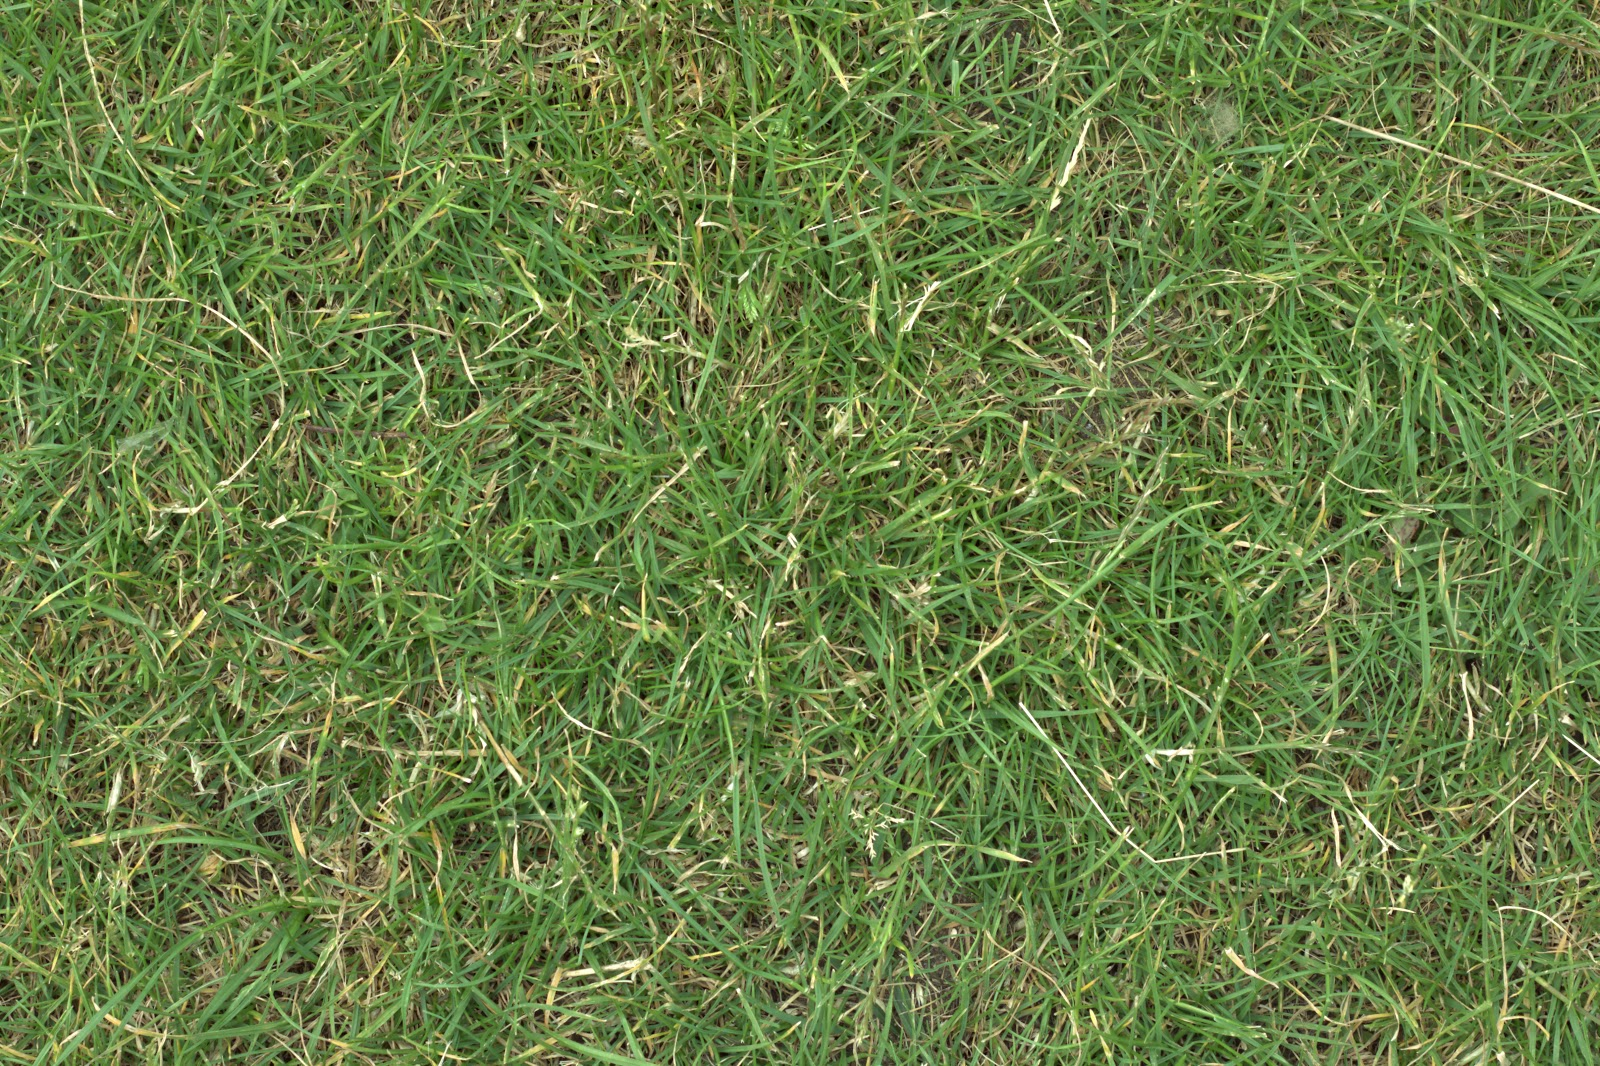 Grass turf lawn green ground field texture ver 1